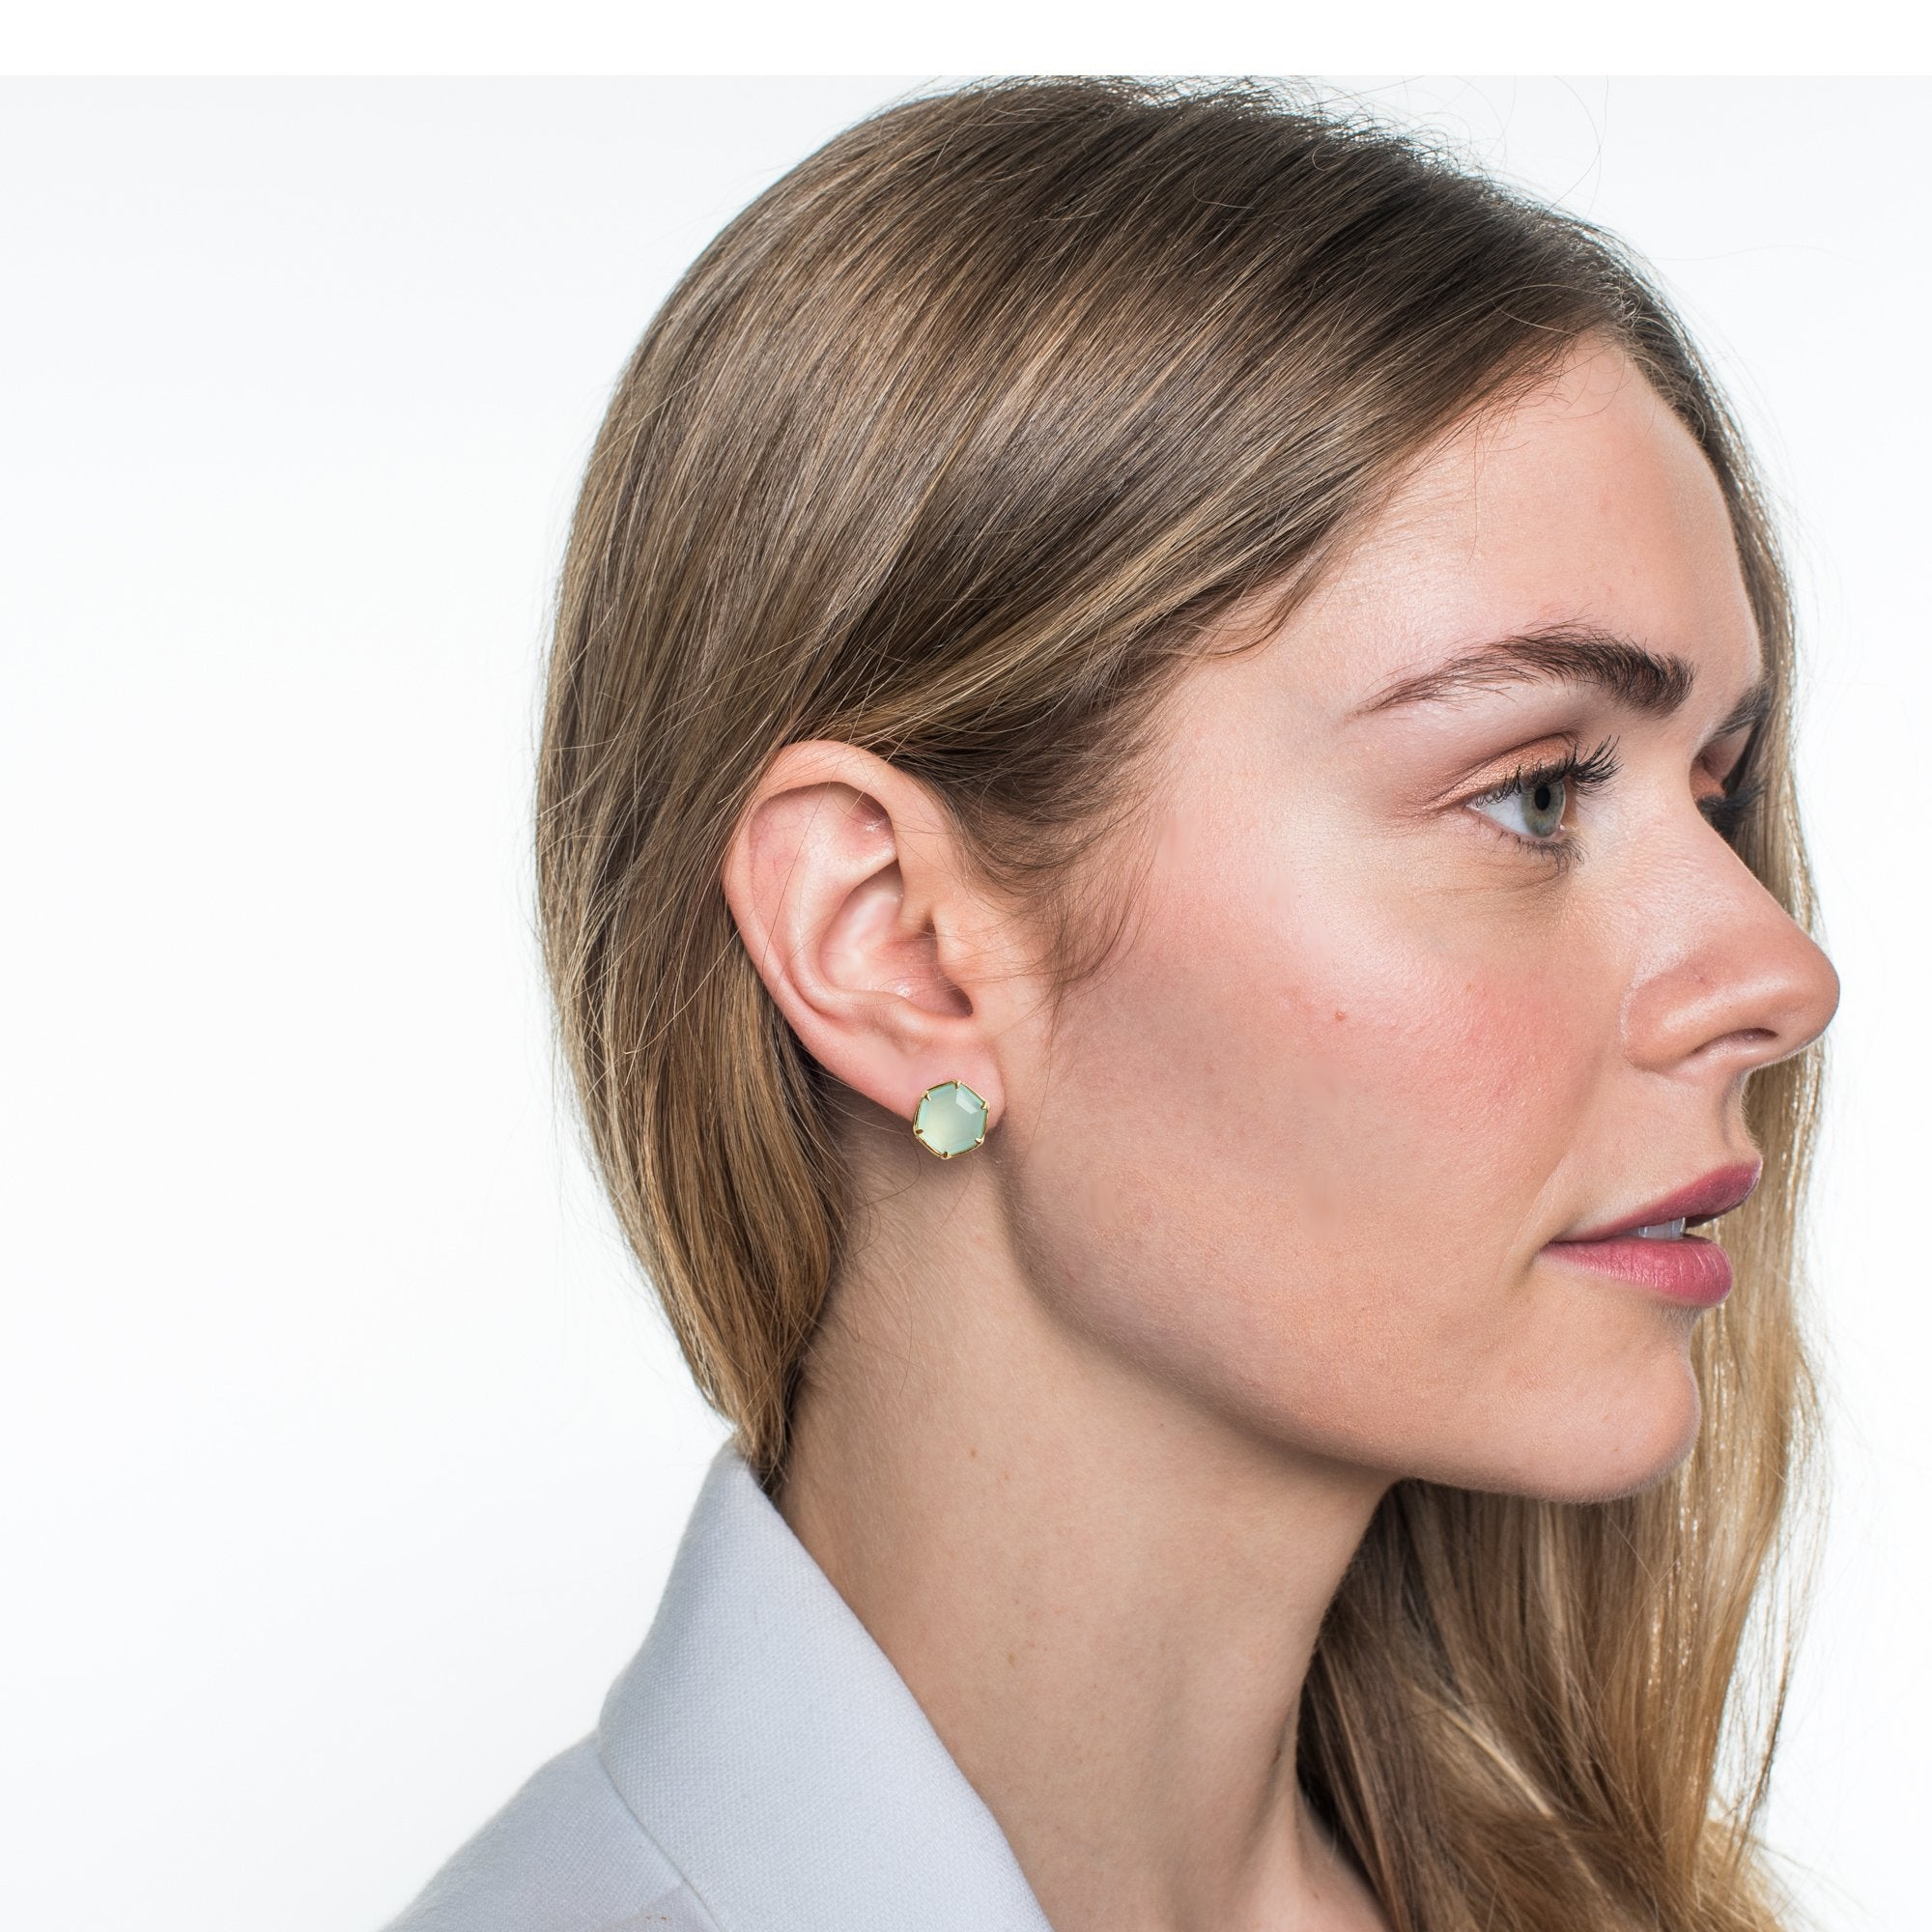 GRACE HEXAGON STUD EARRINGS - AQUA CHALCEDONY & GOLD - SO PRETTY CARA COTTER